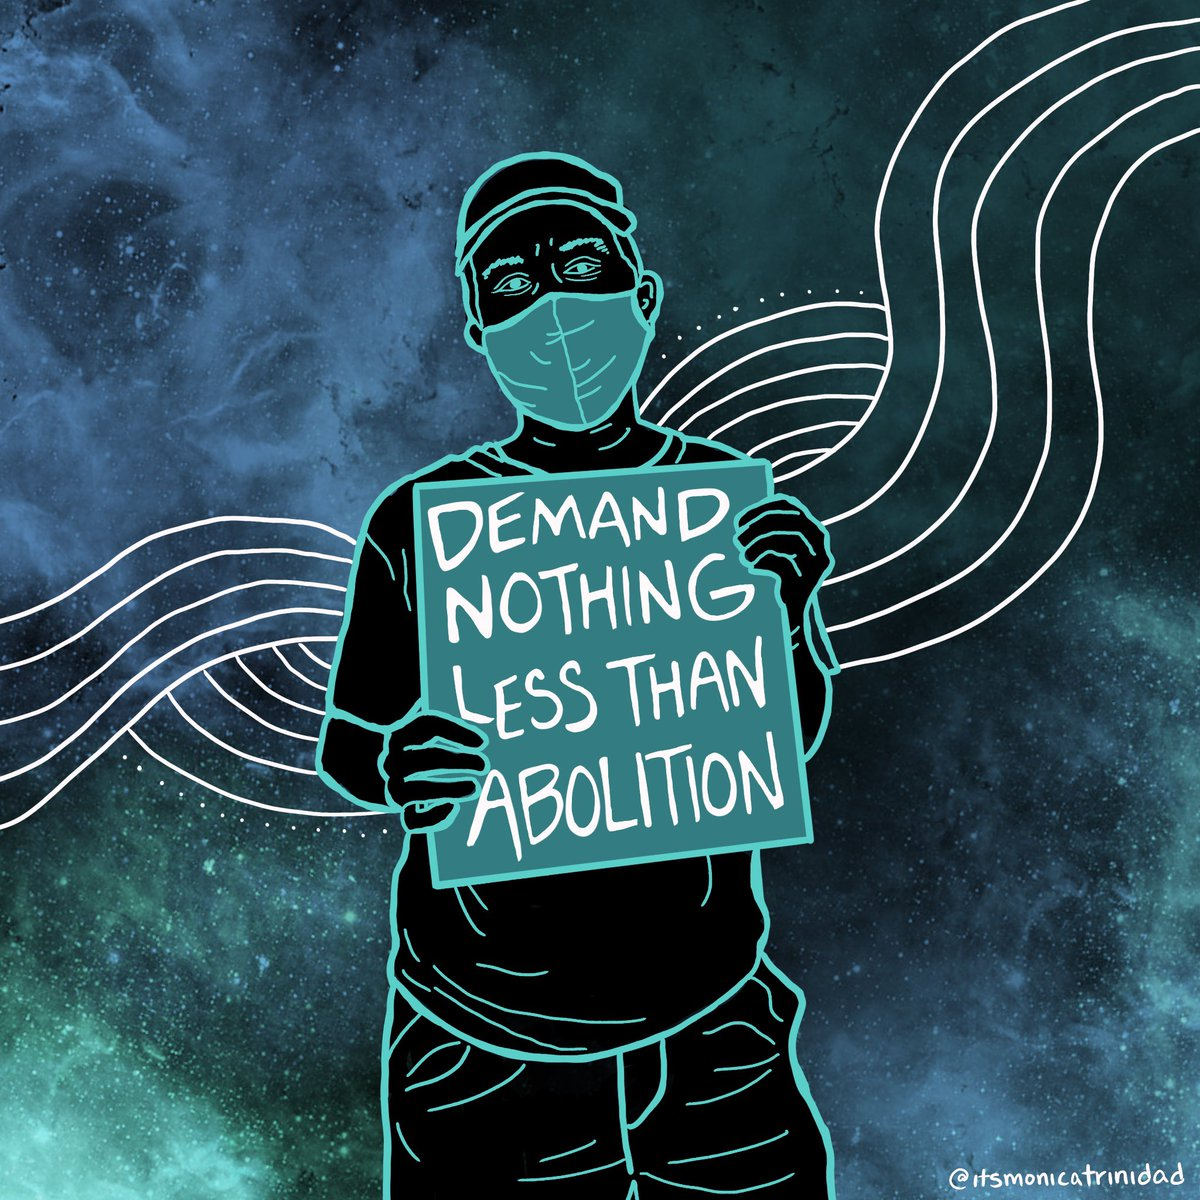 May every action we take get us one step closer to abolition. Demand nothing less! Art by me.